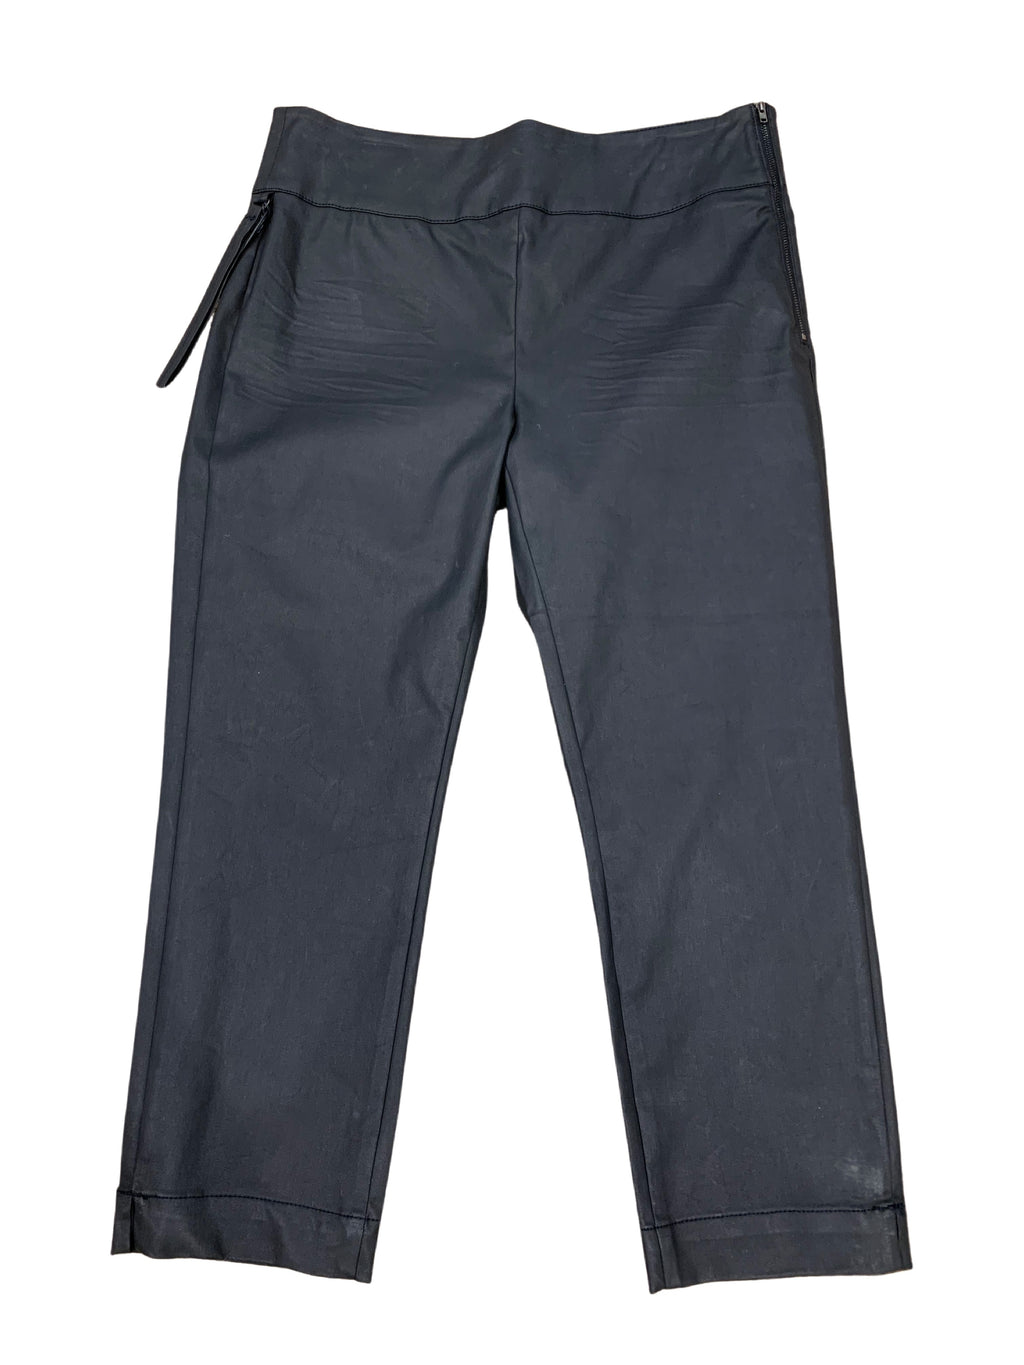 Sarah Pacini Dark Grey Pants - Chic Thrills Boutique